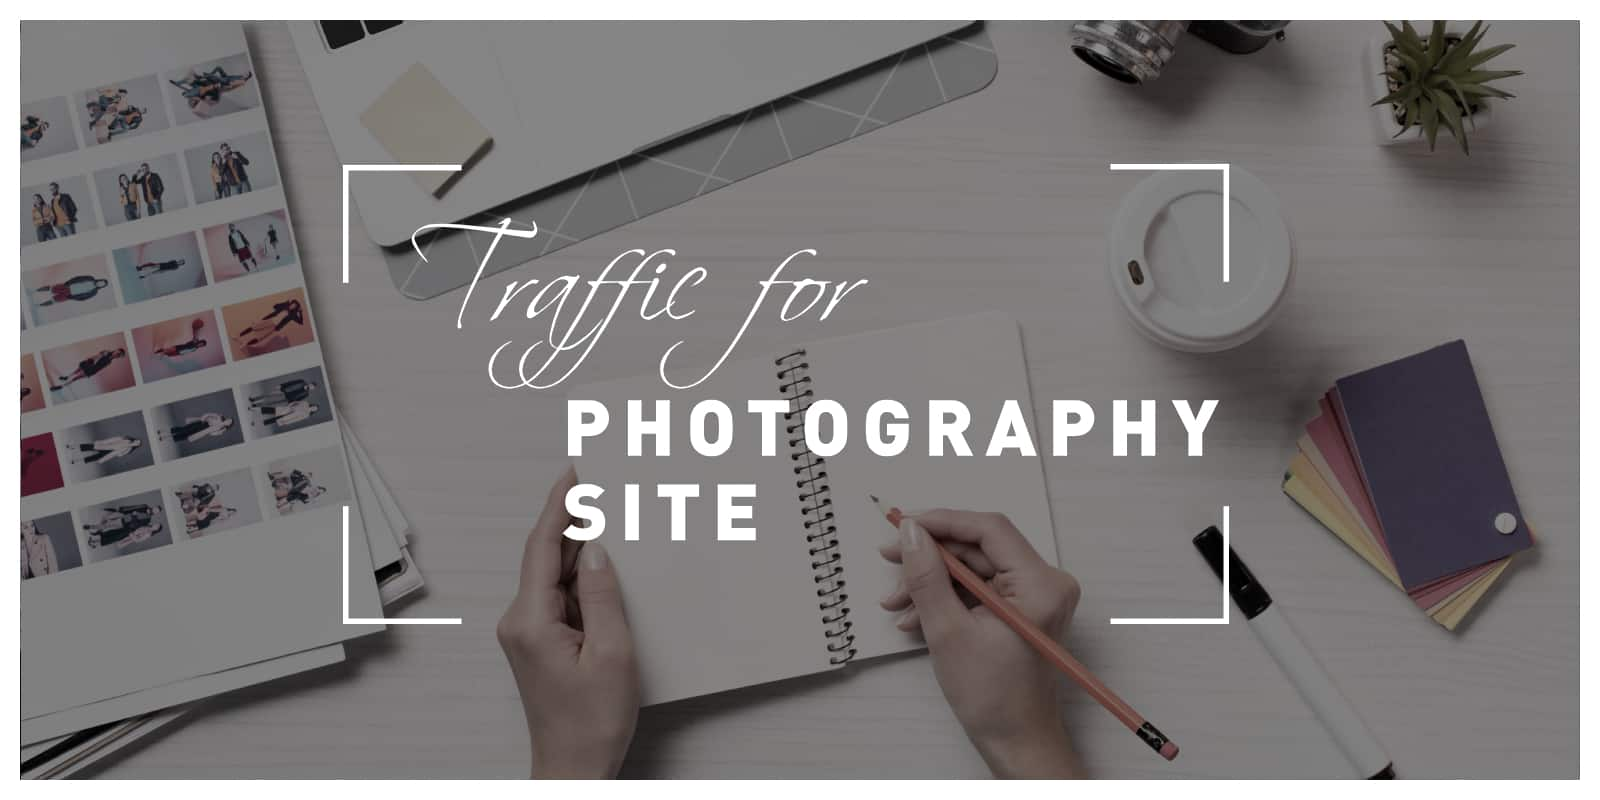 Get traffic on photography site